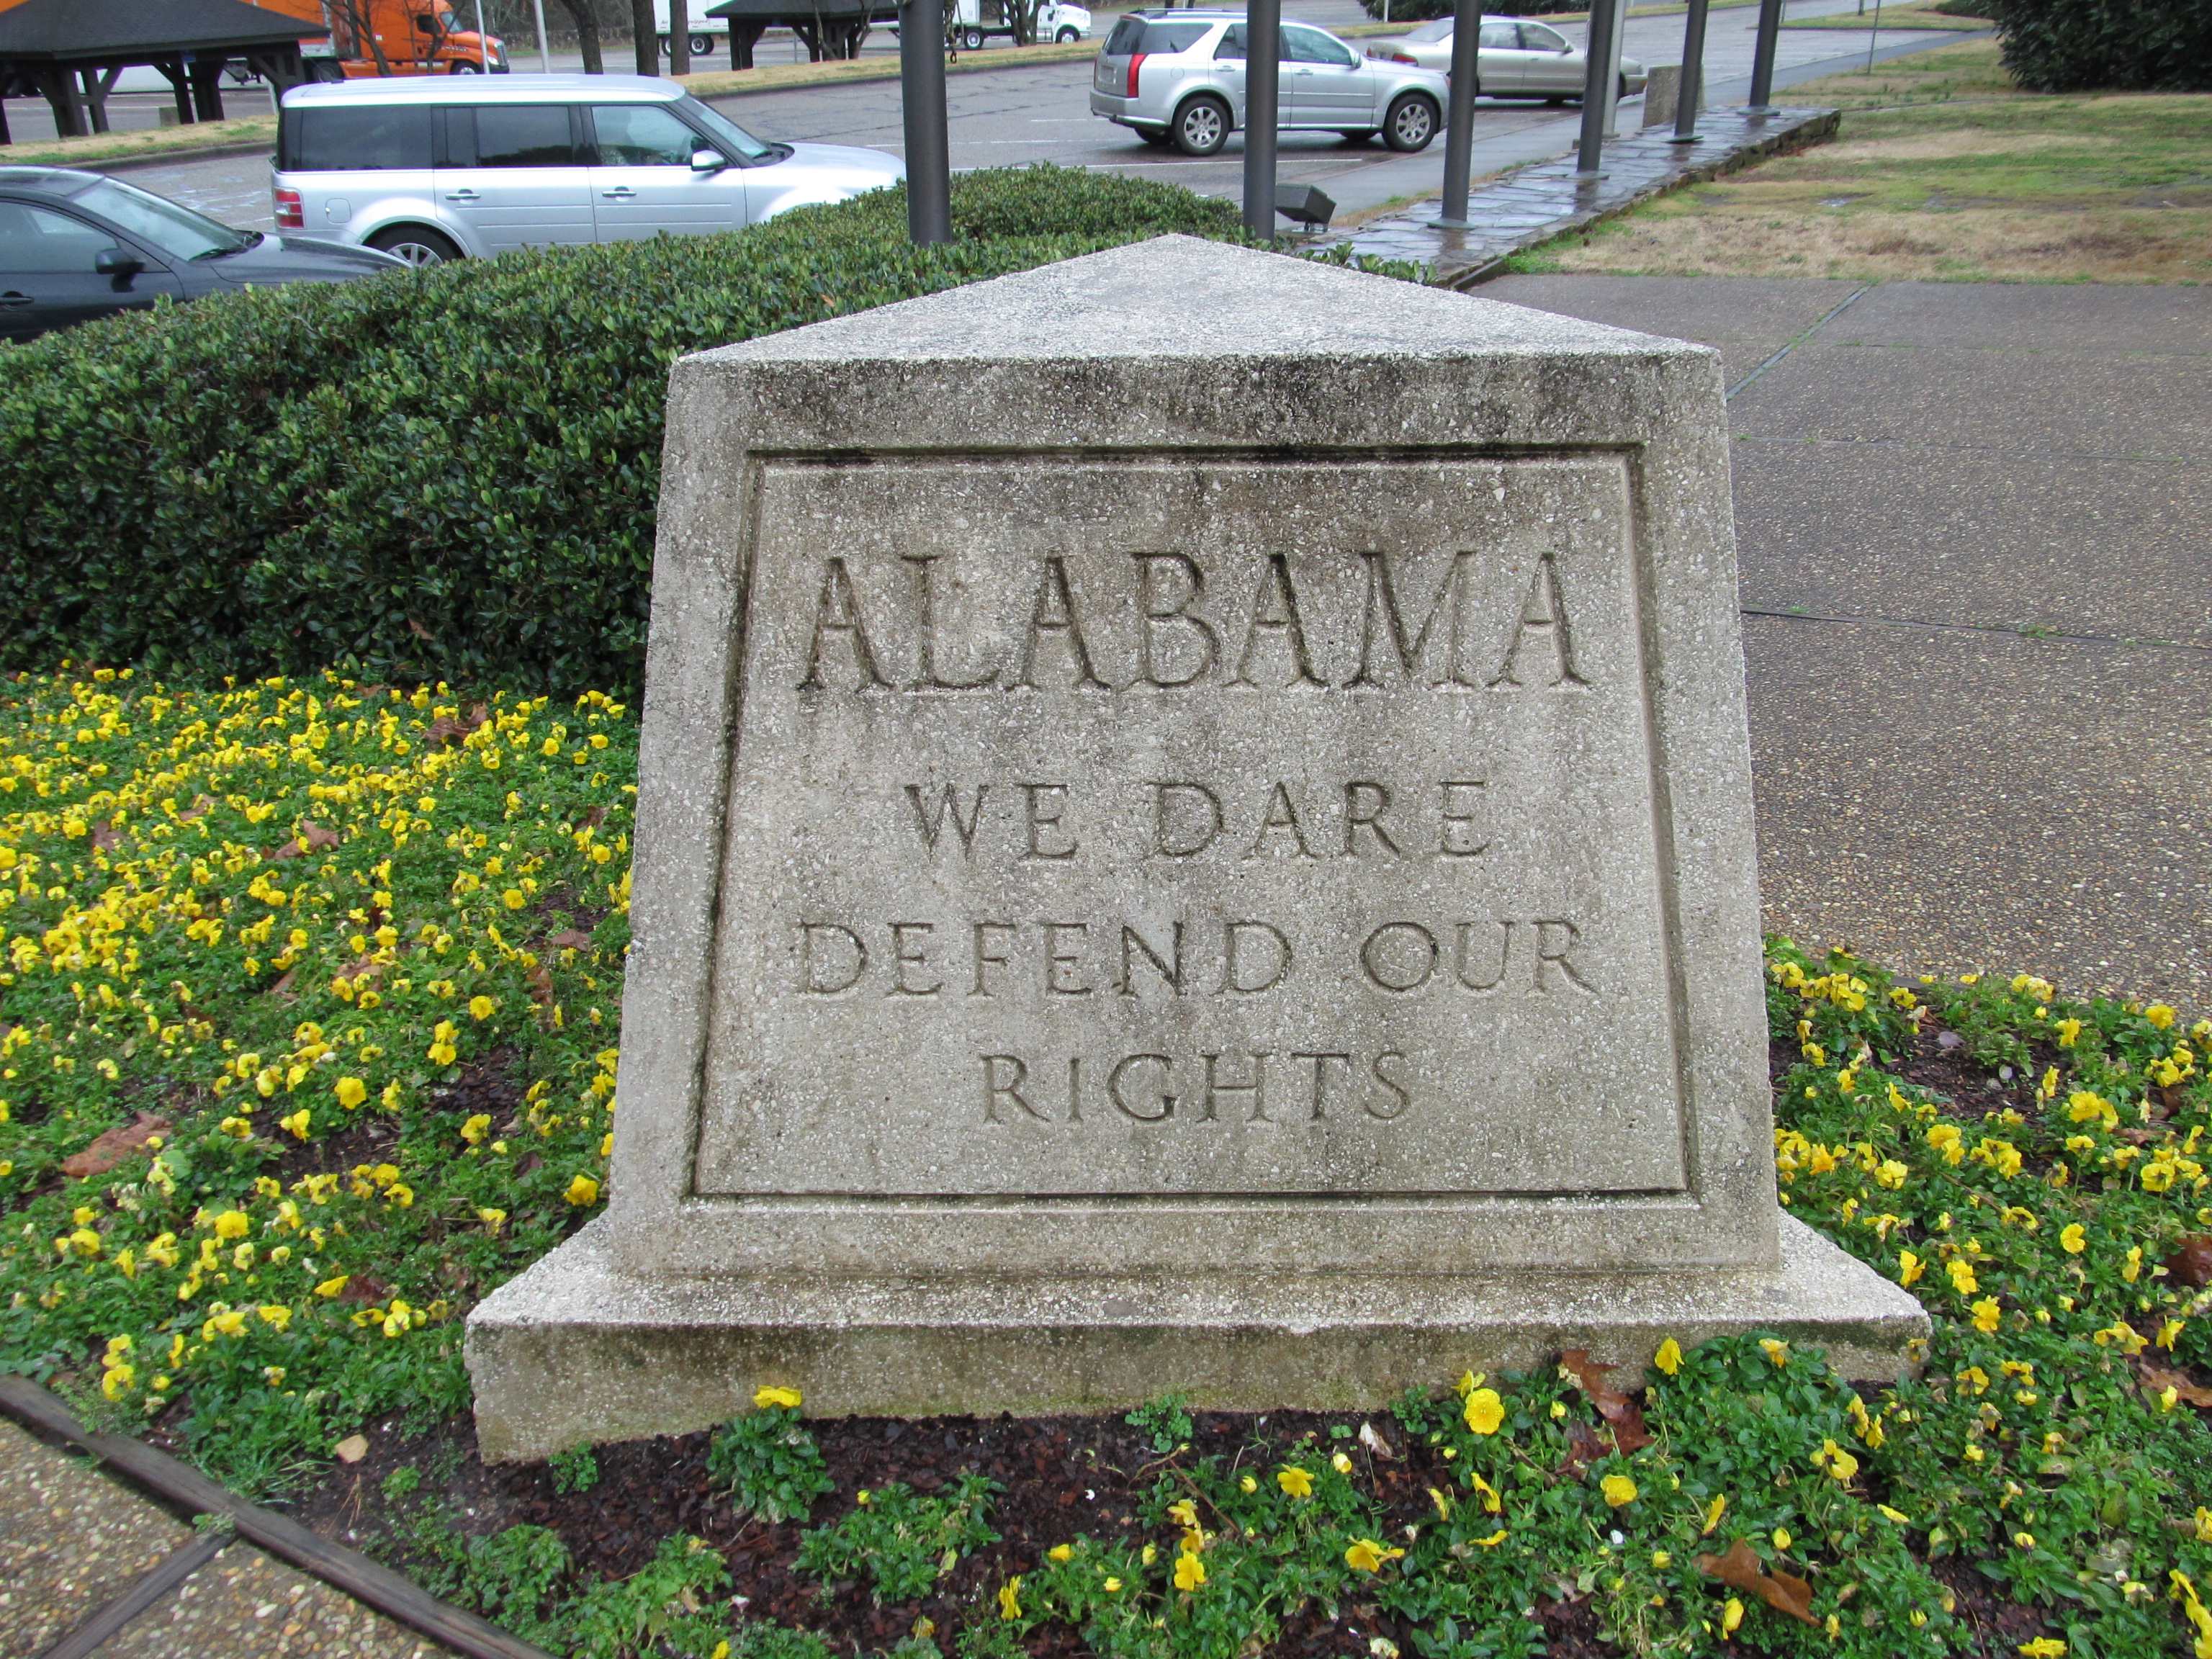 File:State Motto Marker at Alabama Welcome Center, Cleburne Countybalance of cleburne county